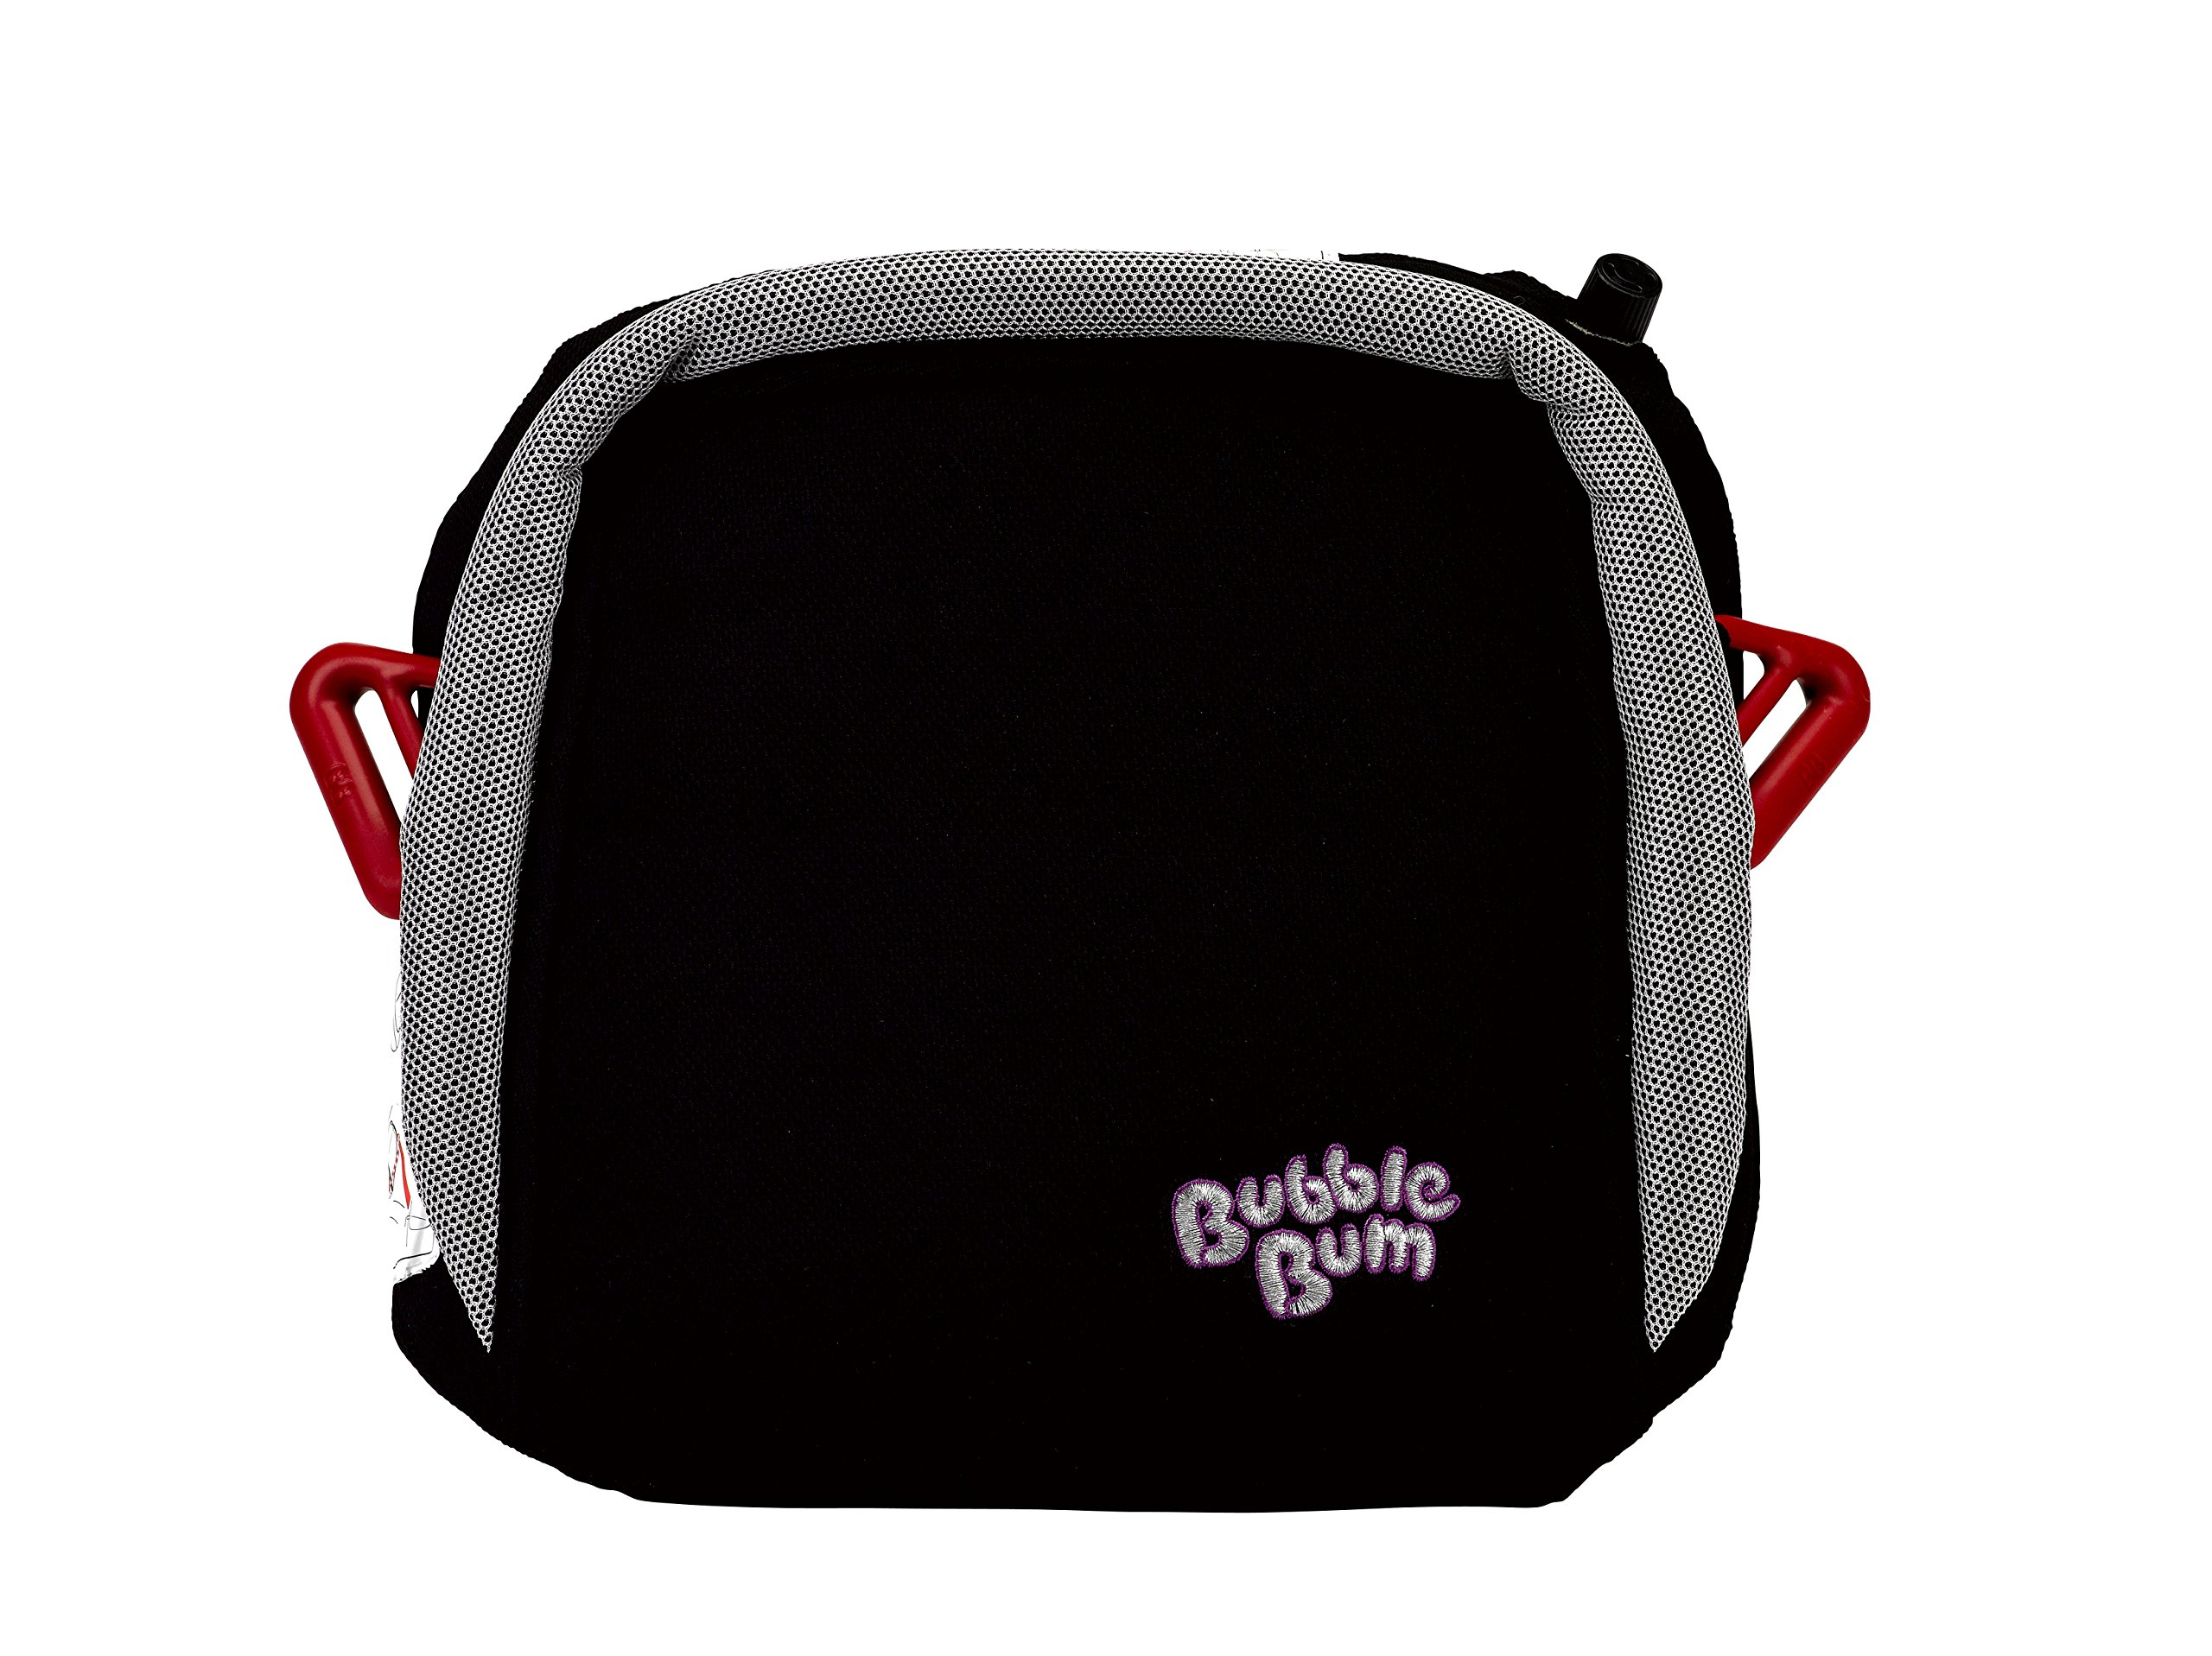 BubbleBum Inflatable Travel Car Booster Seat, Group 2/3, Black  The Award Winning BubbleBum Car Booster Seat The Inflatable, portable & safe booster seat for children aged 4 - 11, 15 - 36kg (with the provision of a vehicle headrest) Approved to the EU Safety Standard R44.04 for both Groups 2 and 3. Dimension - When inflated the seat measures 11 x11 x 4.5 Inches.  When deflated the seat measures 11.8 x 5.9 x 3.9 Inches.  Tip - ideal as you can now fit three across the back 2